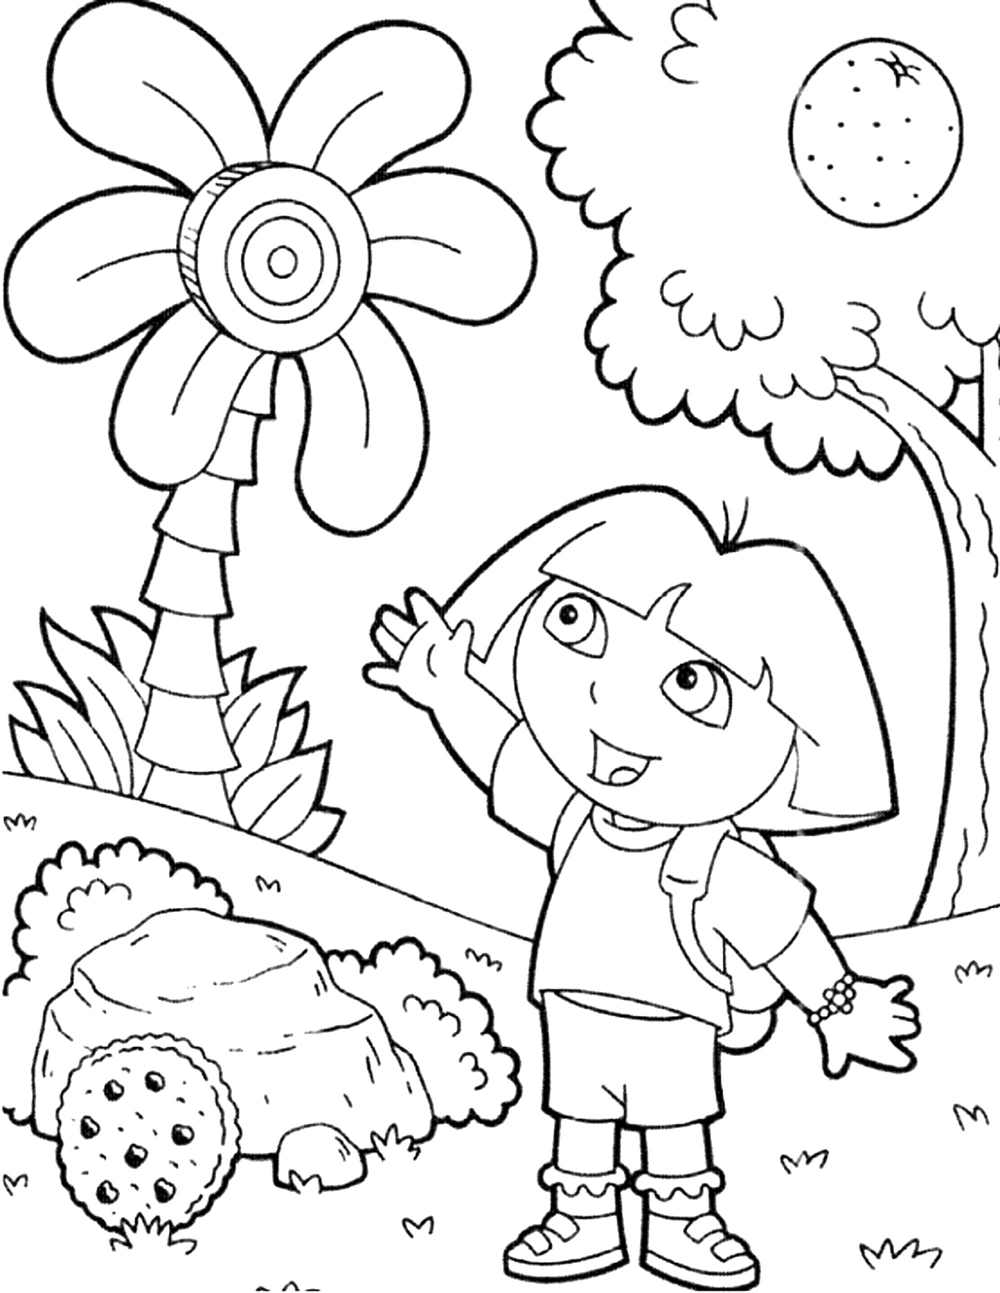 coloring sheets of dora print download dora coloring pages to learn new things dora sheets of coloring